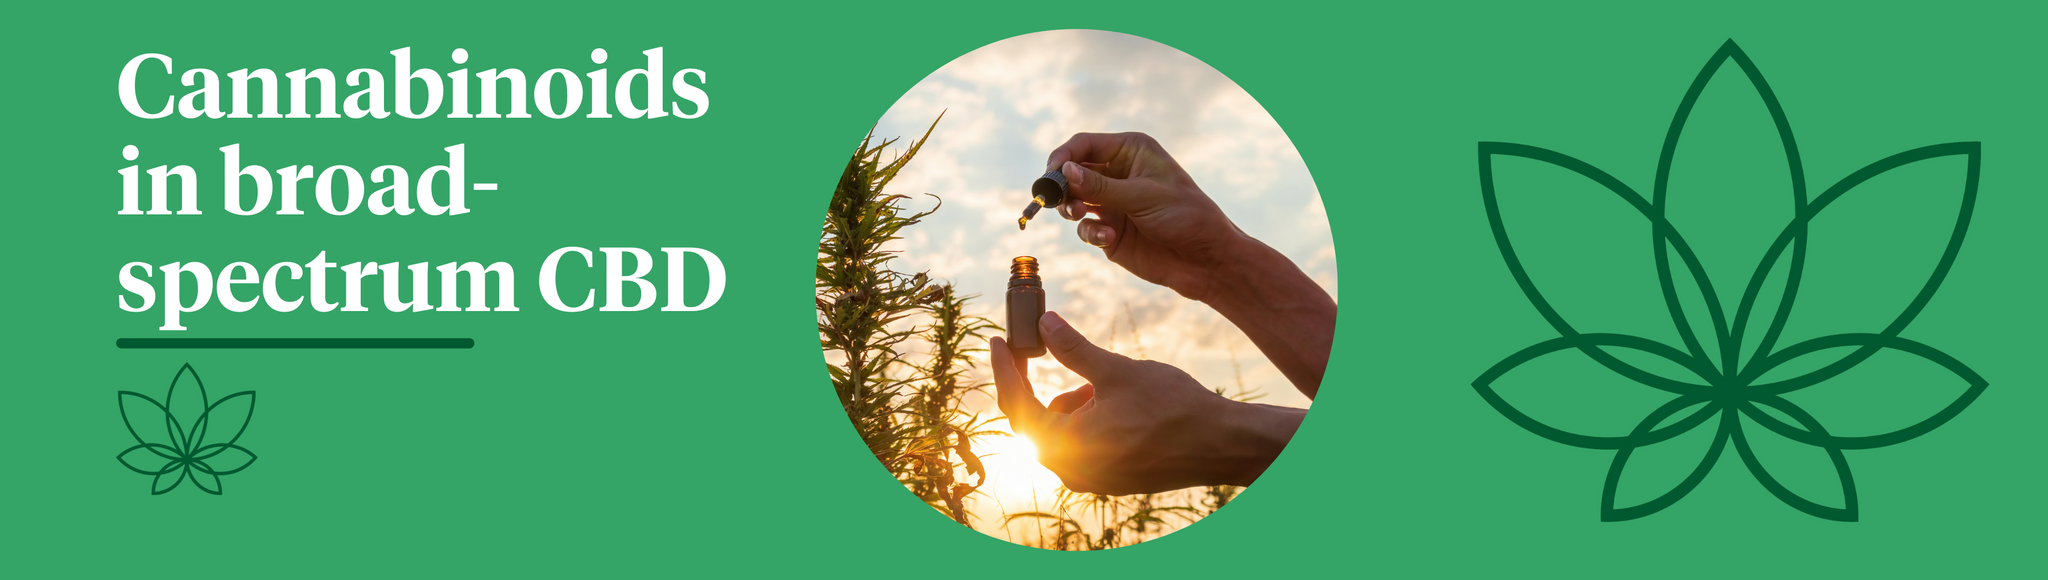 A green background with the Supreme CBD logo to the right and a bottle of CBD oil in the centre to showcase what cannabinoids are in broad-spectrum CBD.